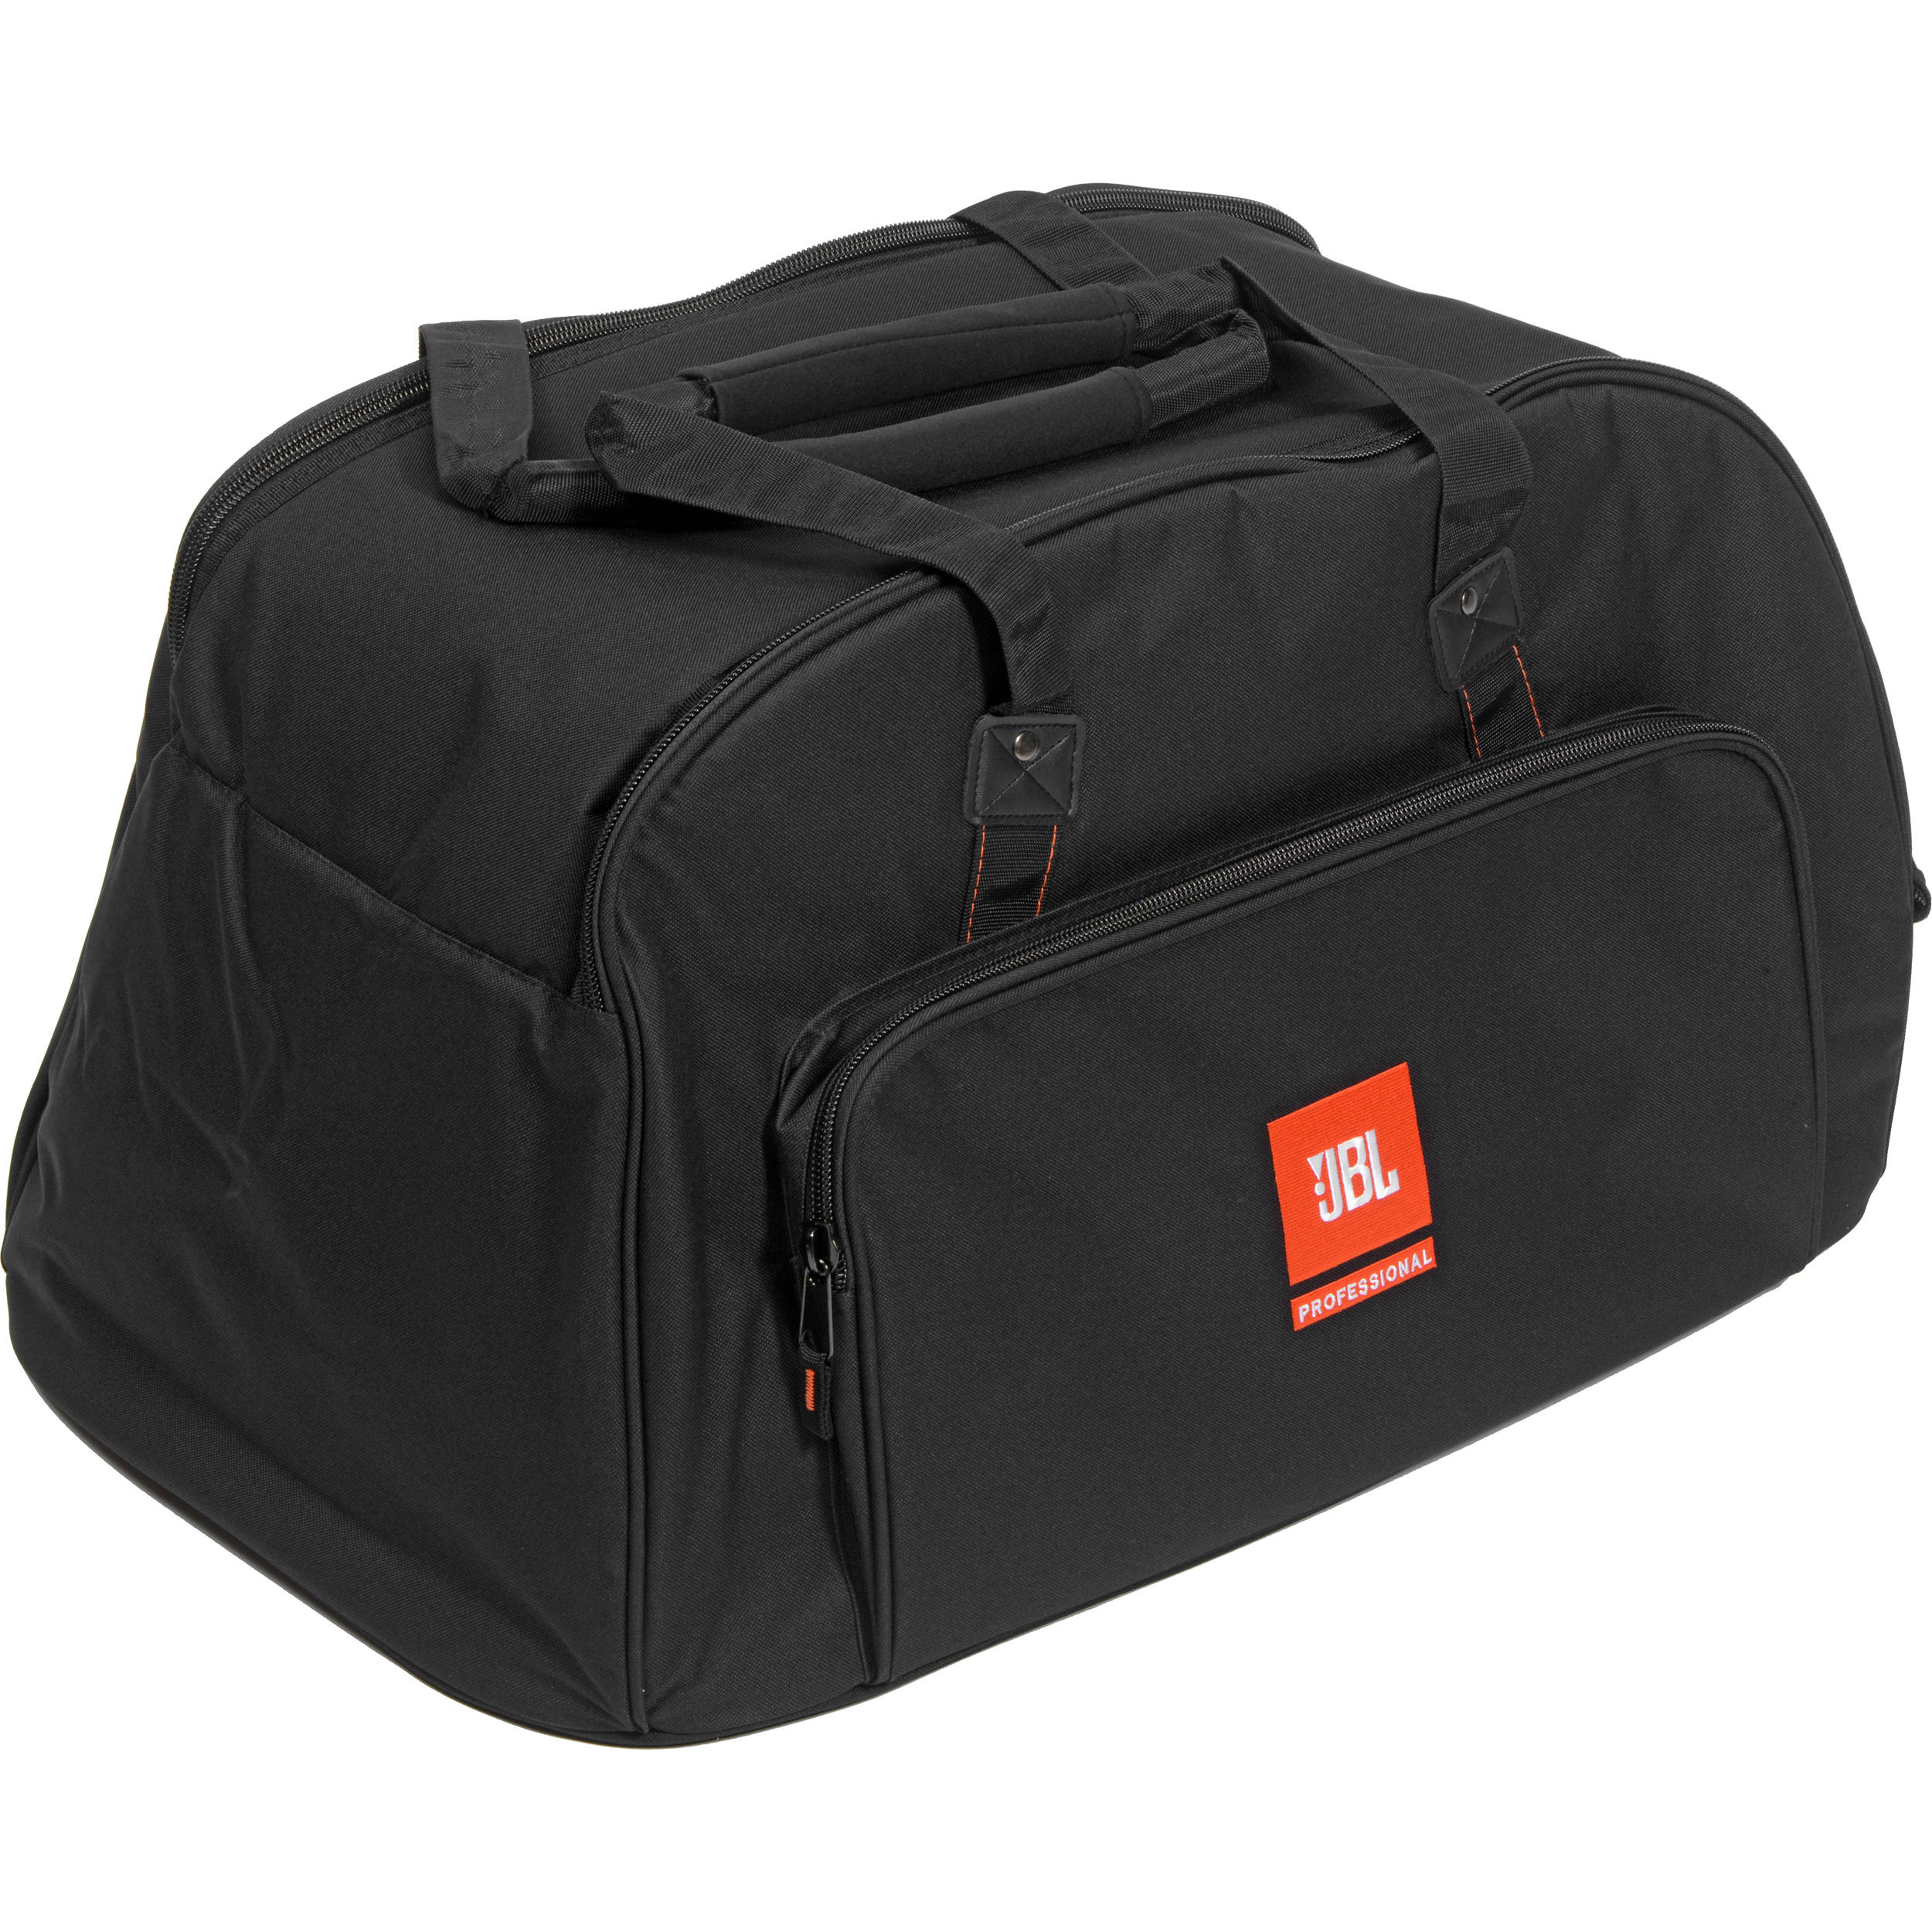 JBL BAGS Deluxe Speaker Carry Bag EON15-BAG-DLX B&H Photo ...